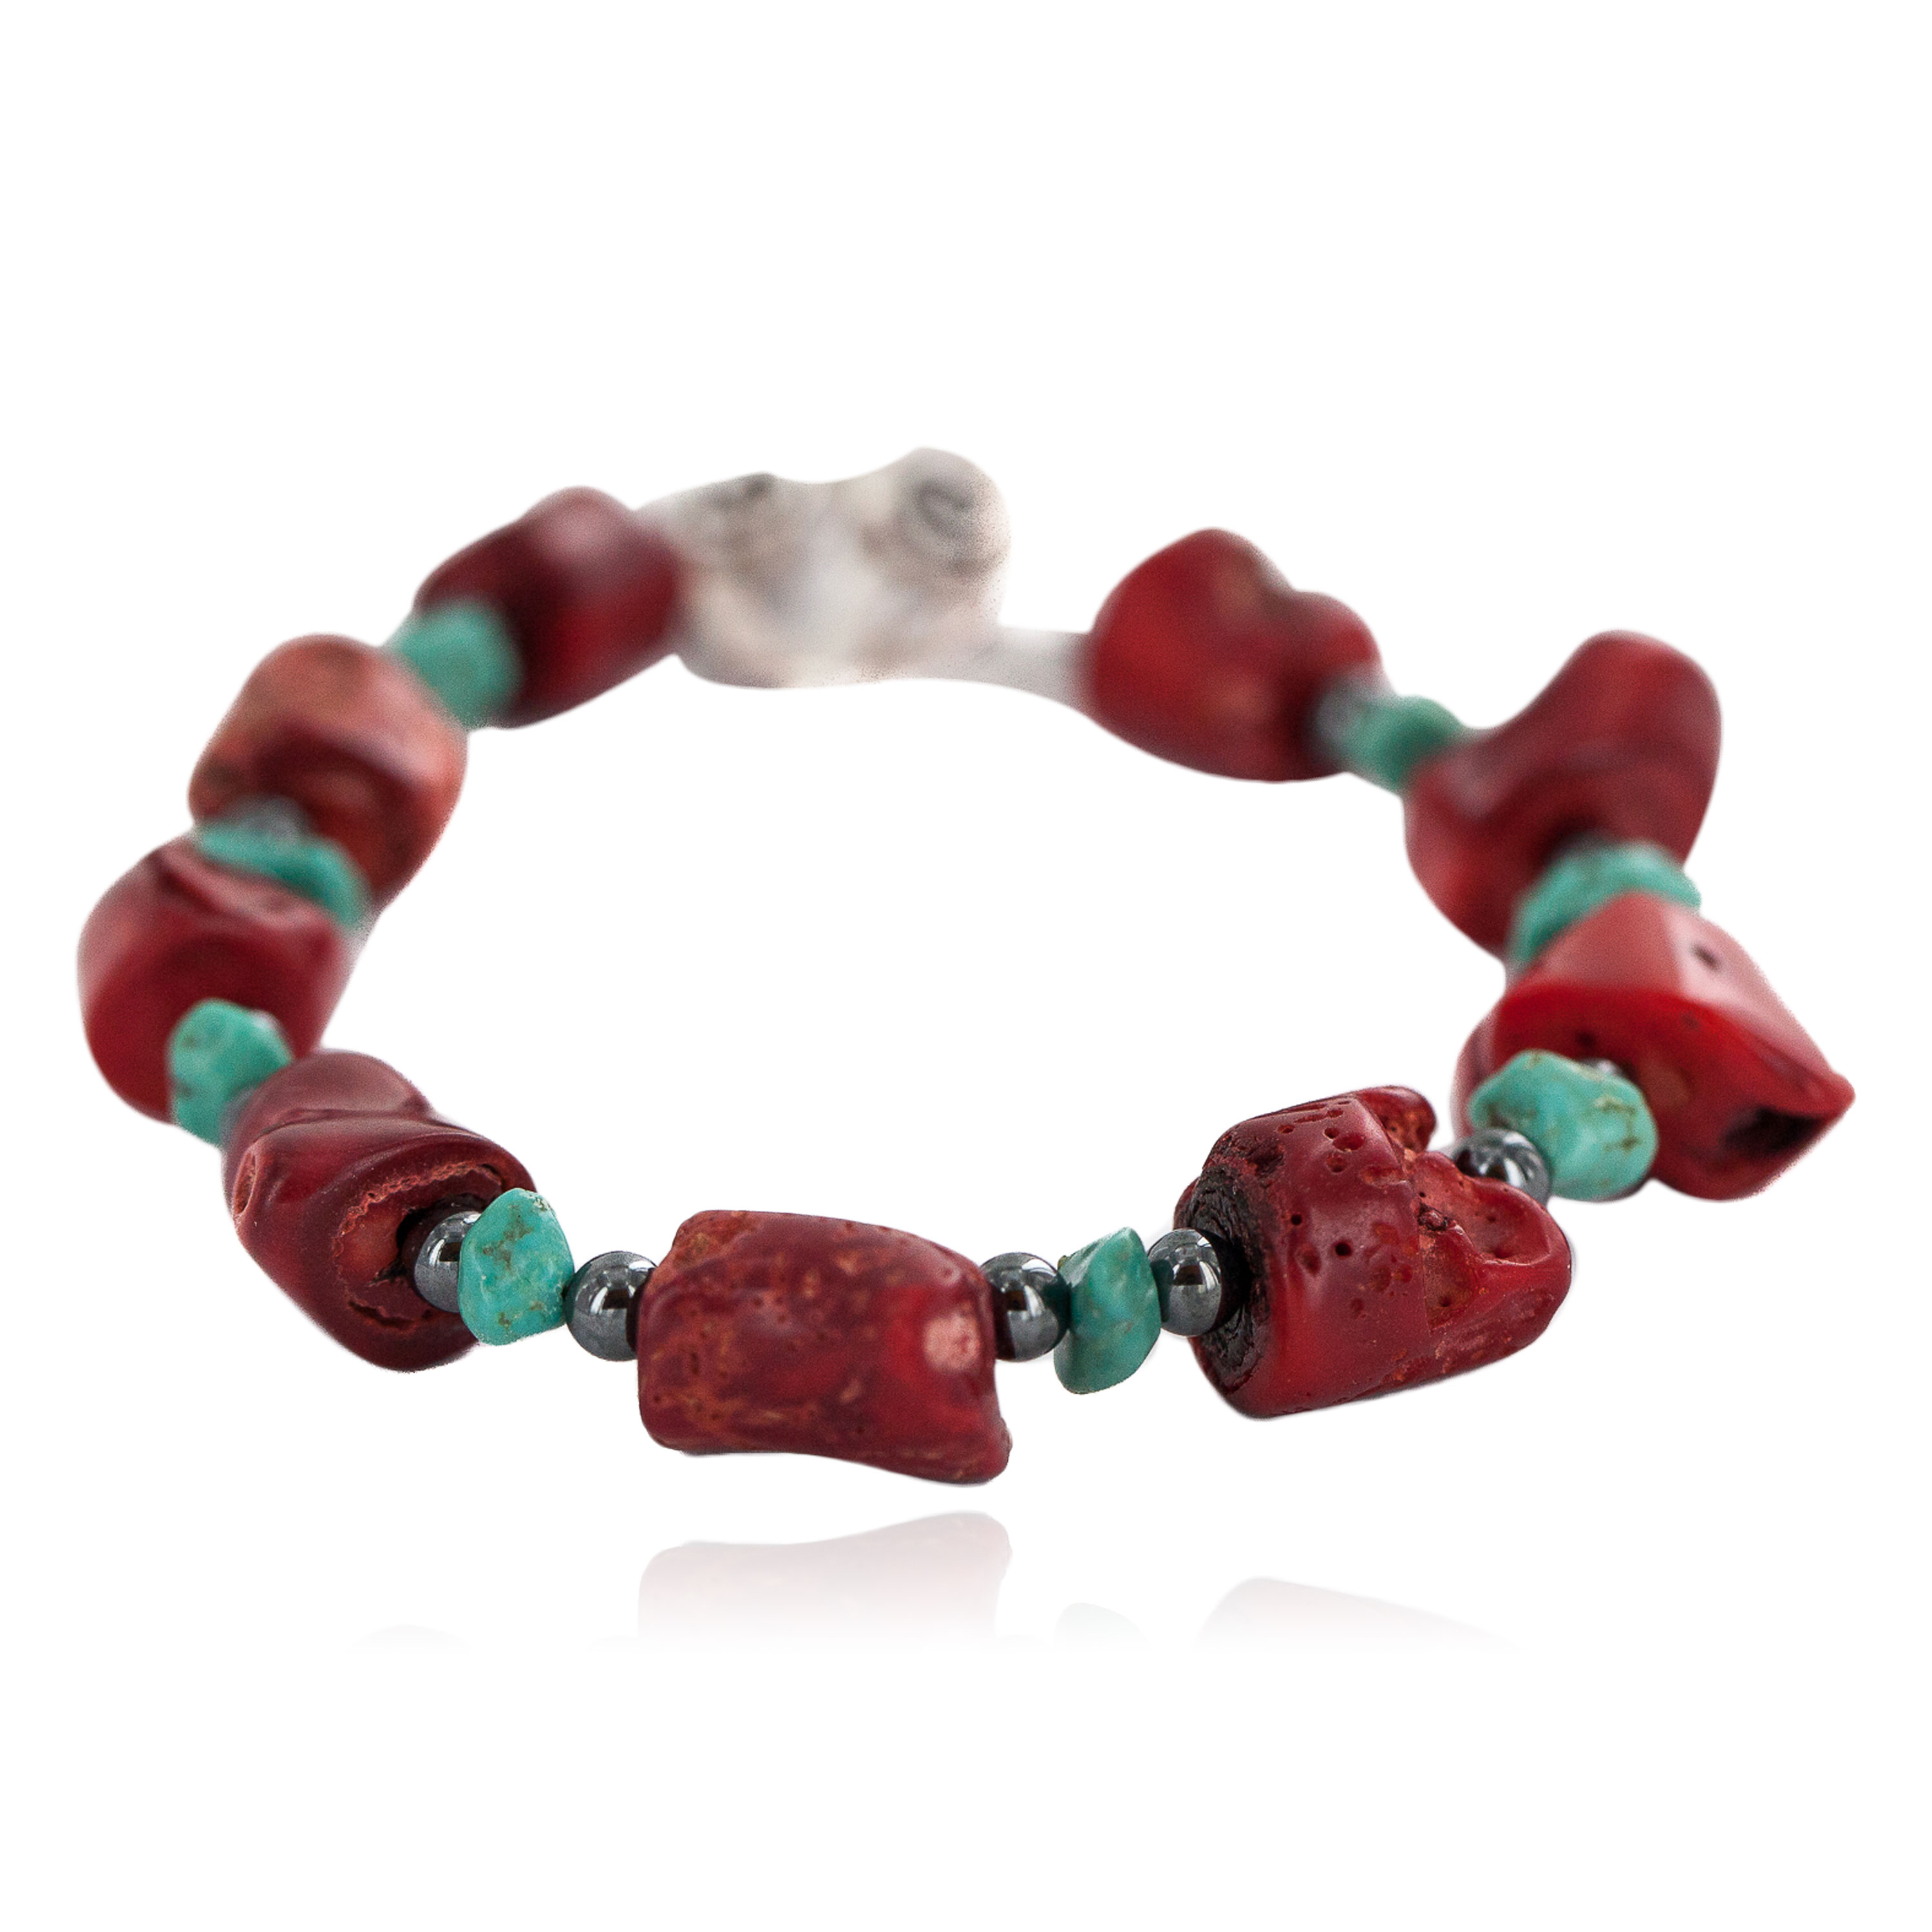 Navajo Nickel Certified Authentic Natural Turquoise Coral Hematite Native American Bracelet 13176-3 All Products NB160514215911 13176-3 (by LomaSiiva)